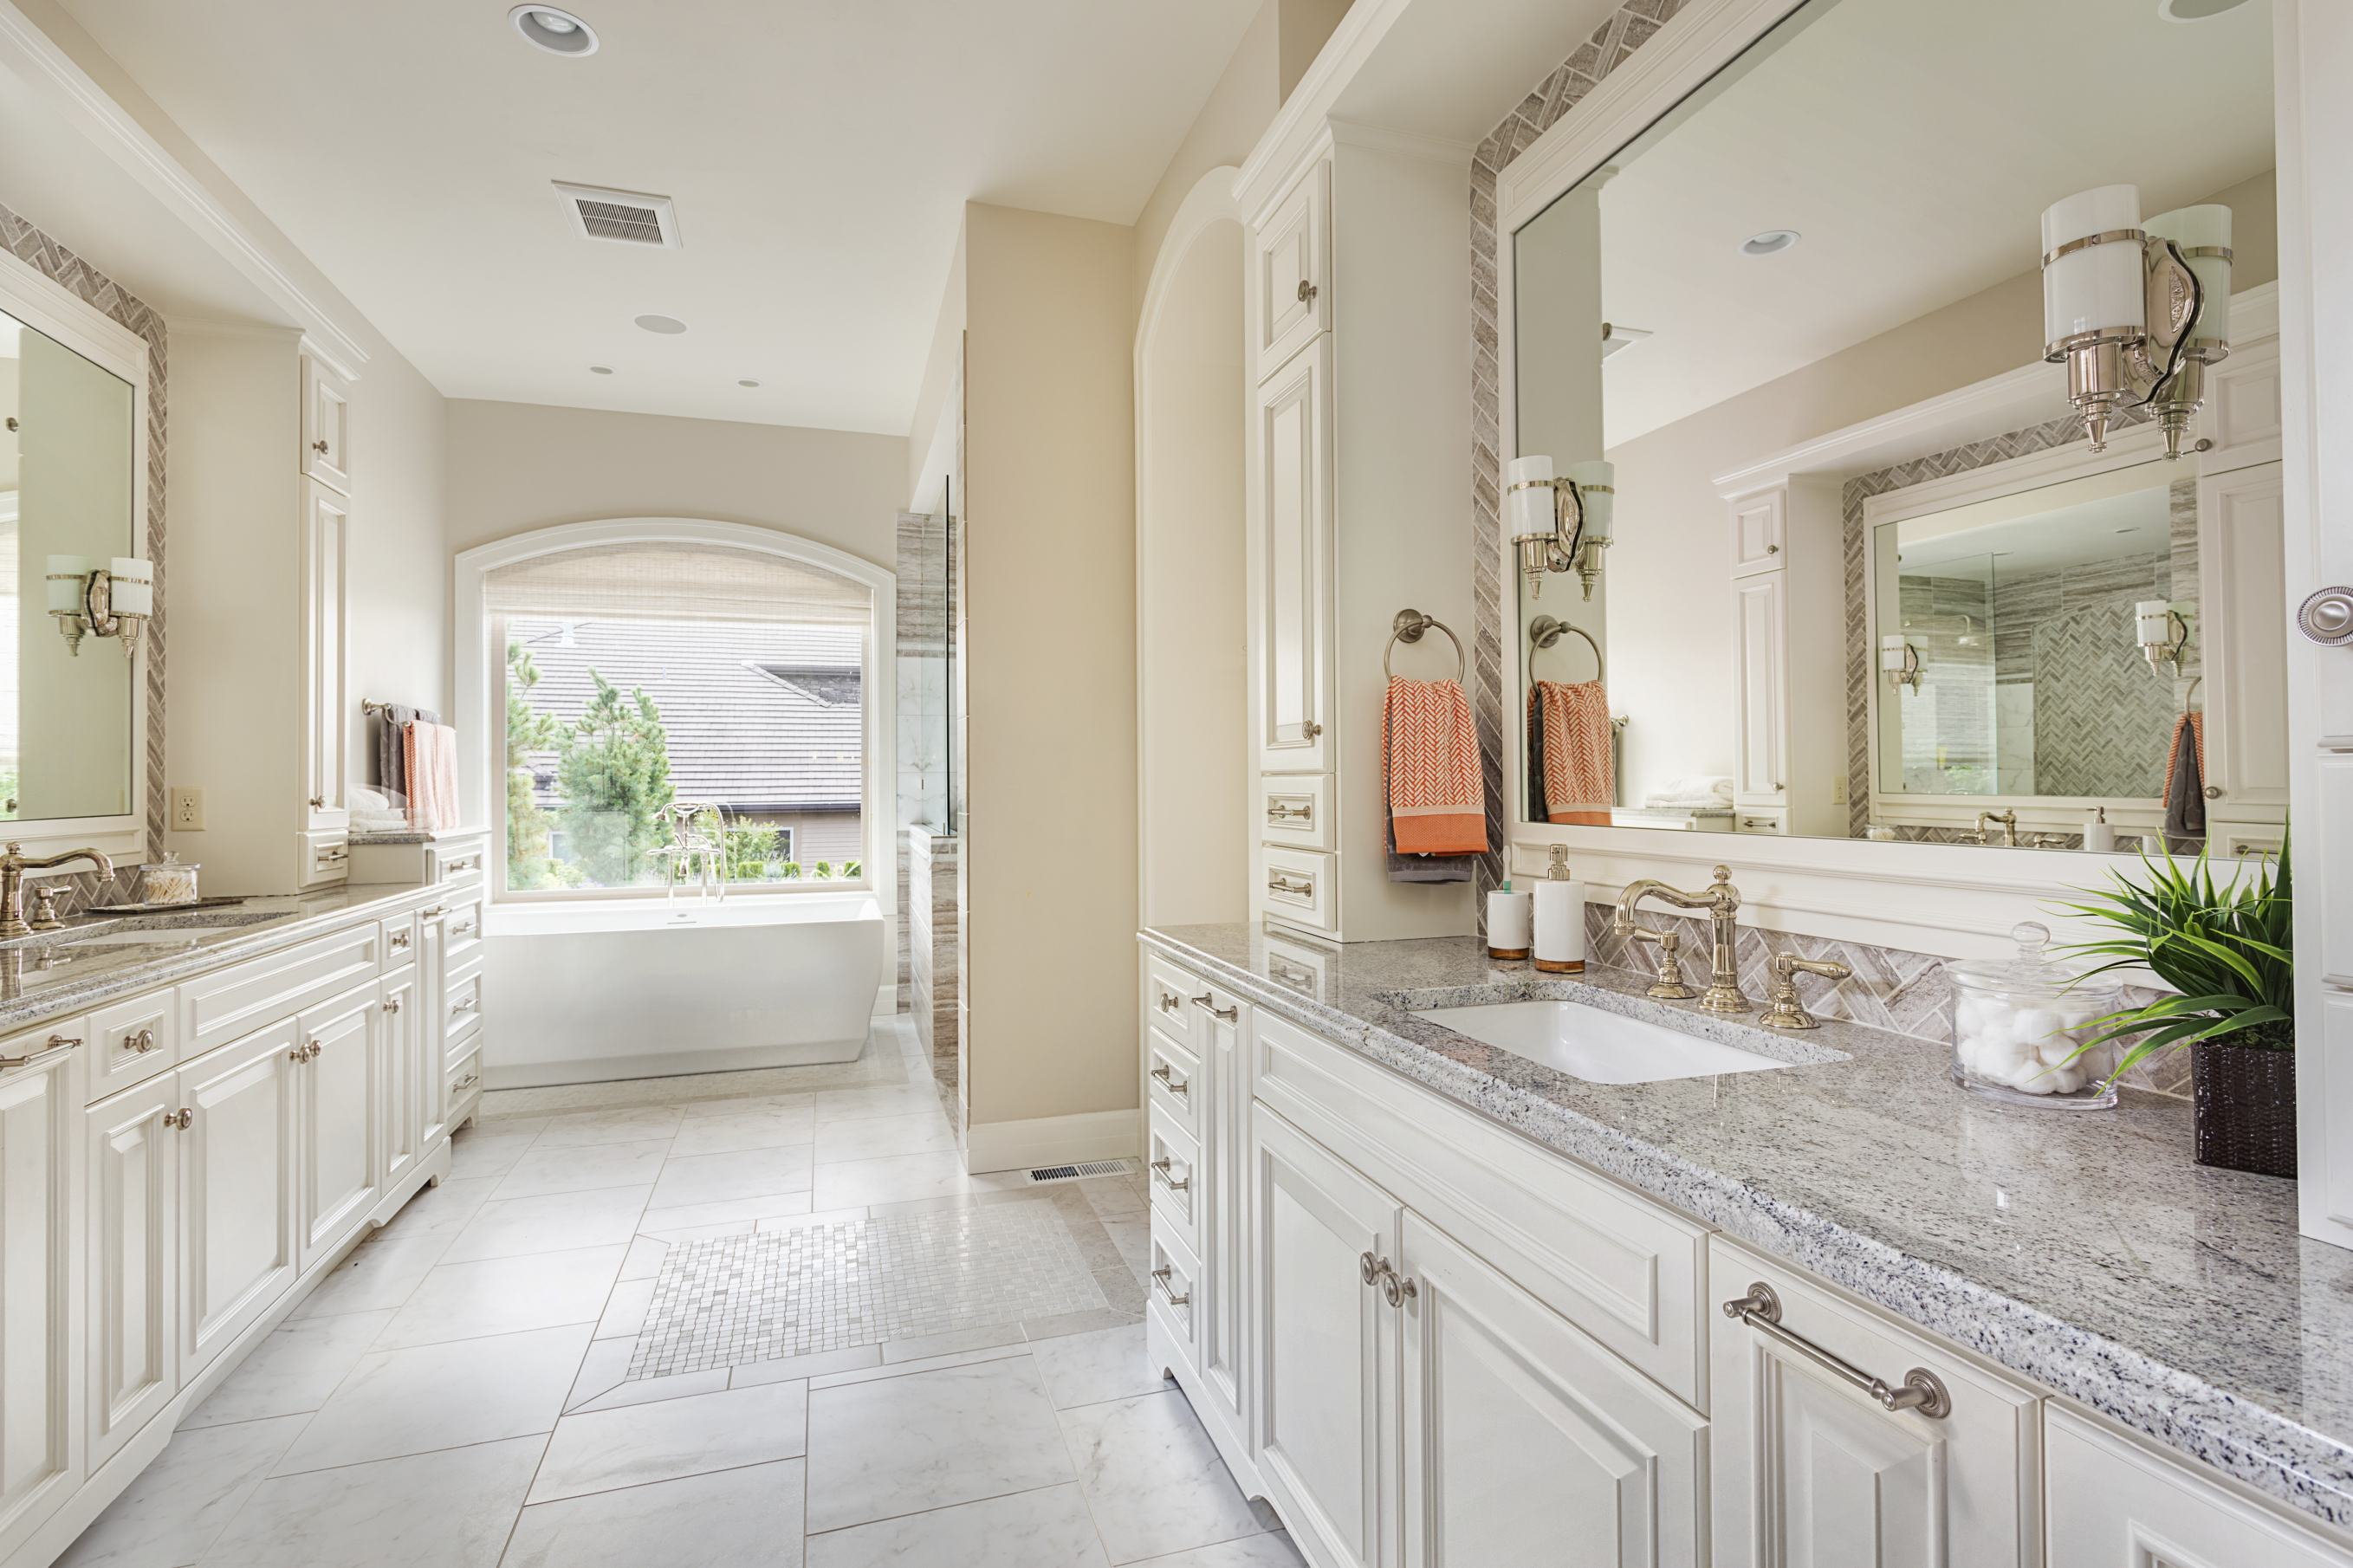 Houston Bathroom Remodeling Houston Bathroom Remodeling Luxury Bathroom Remodeling For Less